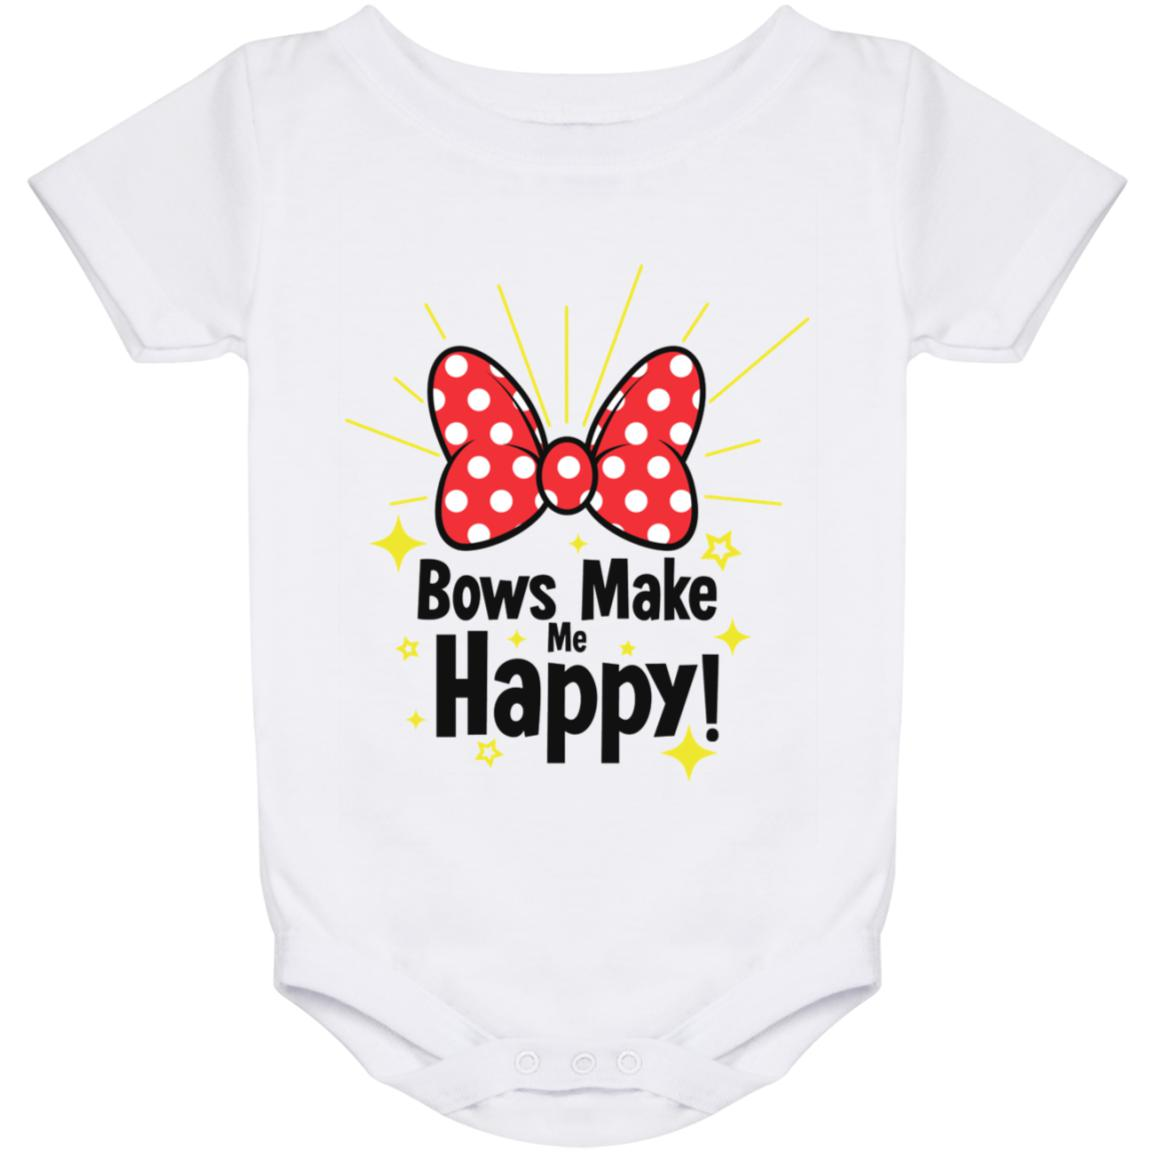 Bows Make Me Happy - Baby Onesie 24 Month